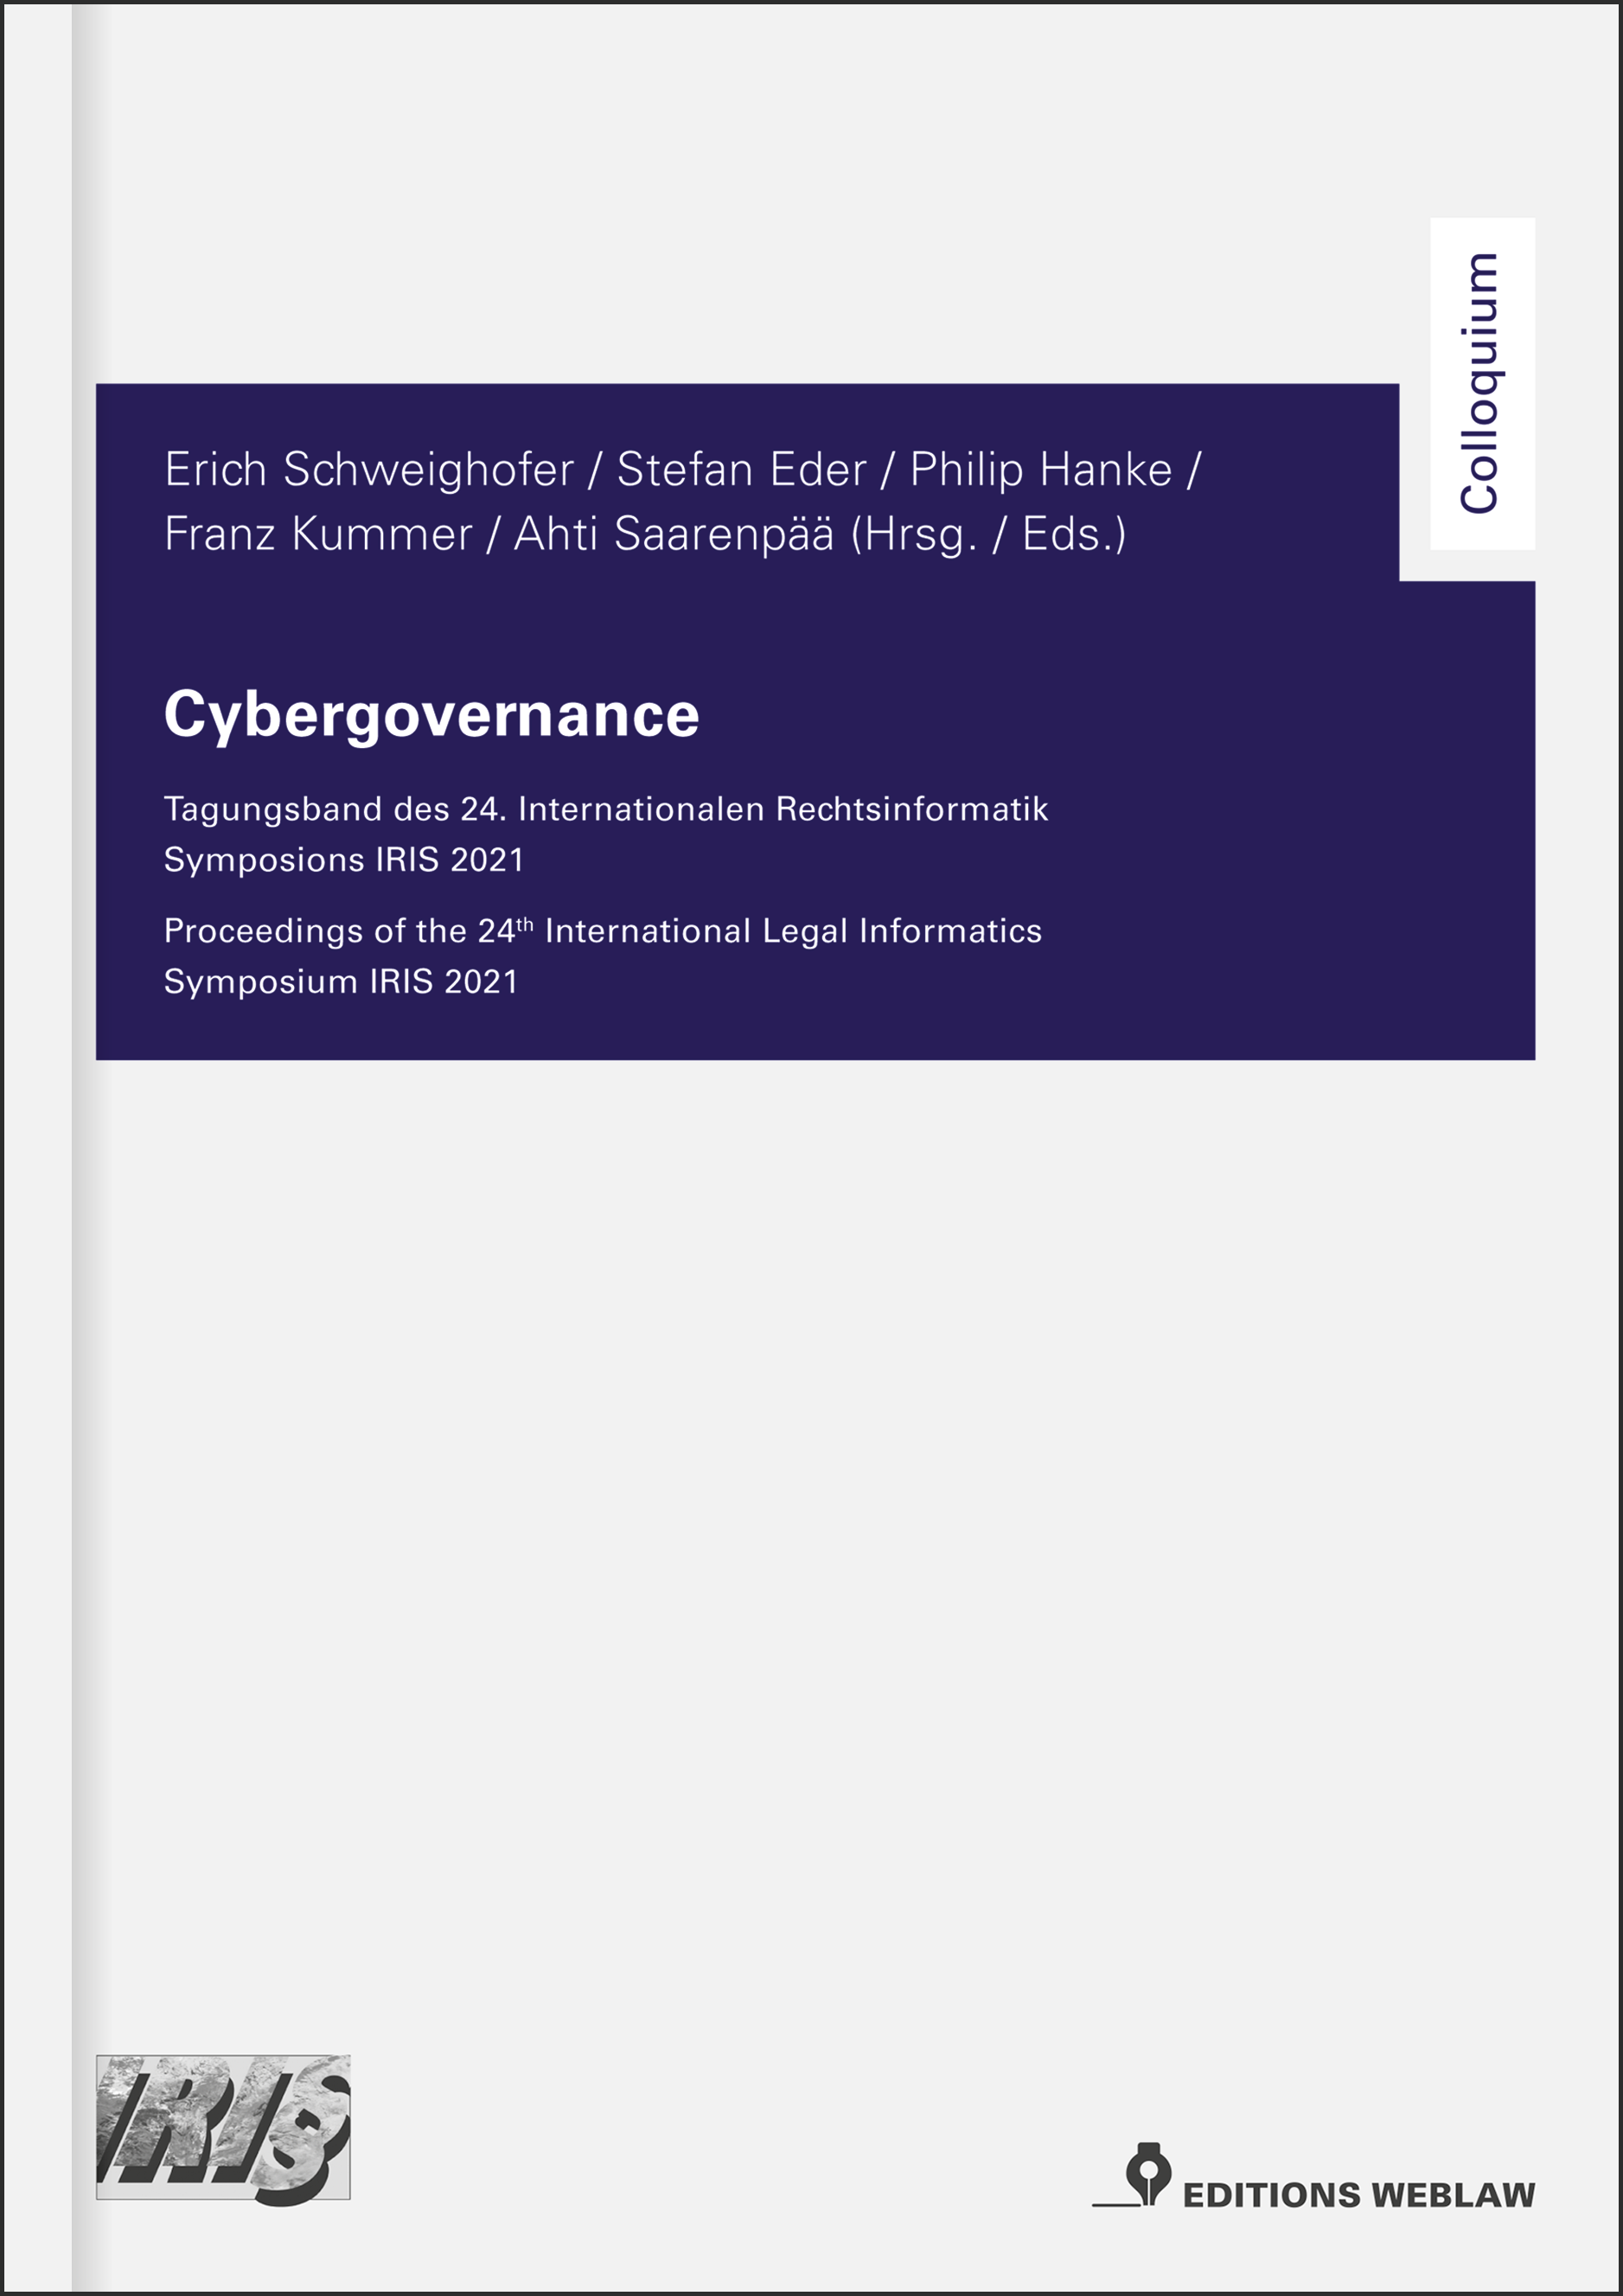 Nouveau aux Editions Weblaw : Cybergovernance – The IRIS Conference Proceedings 2021.